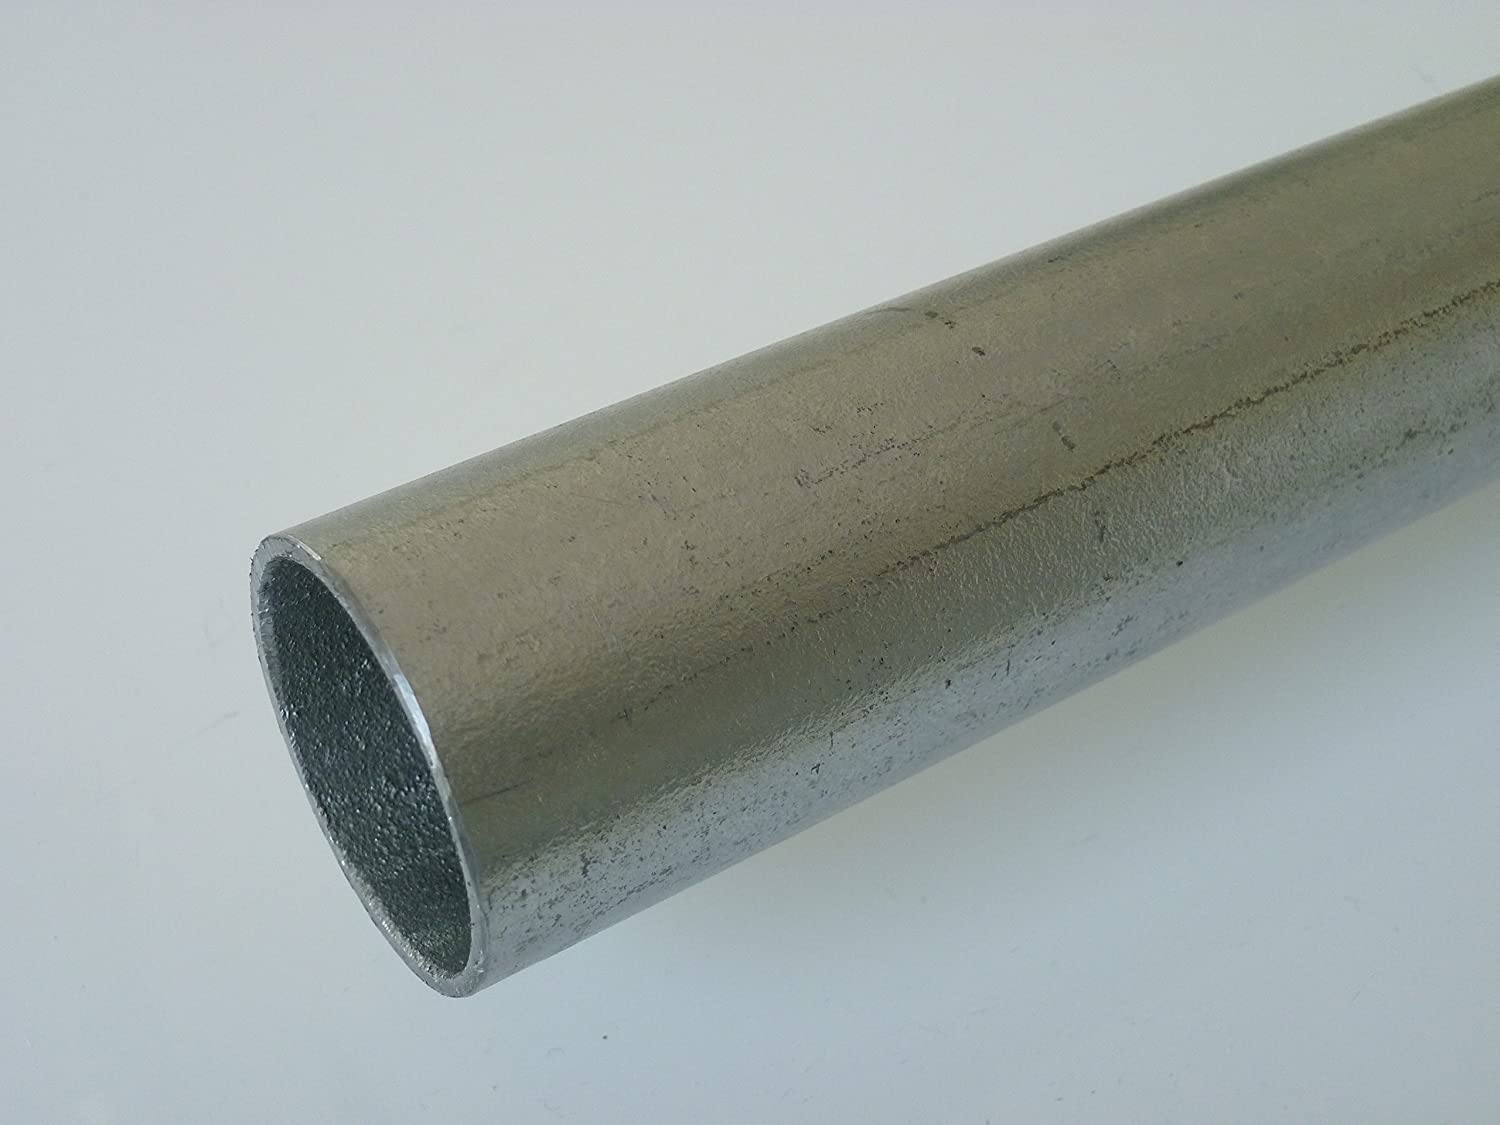 'B & D Metal Steel Round Tube Galvanised 26, 9 x 2.6 mm 3/4 Inch) in Length 1500 mm + 0/3 mm Tube ST37 Hollow Section Hot-dip Galvanised B&T